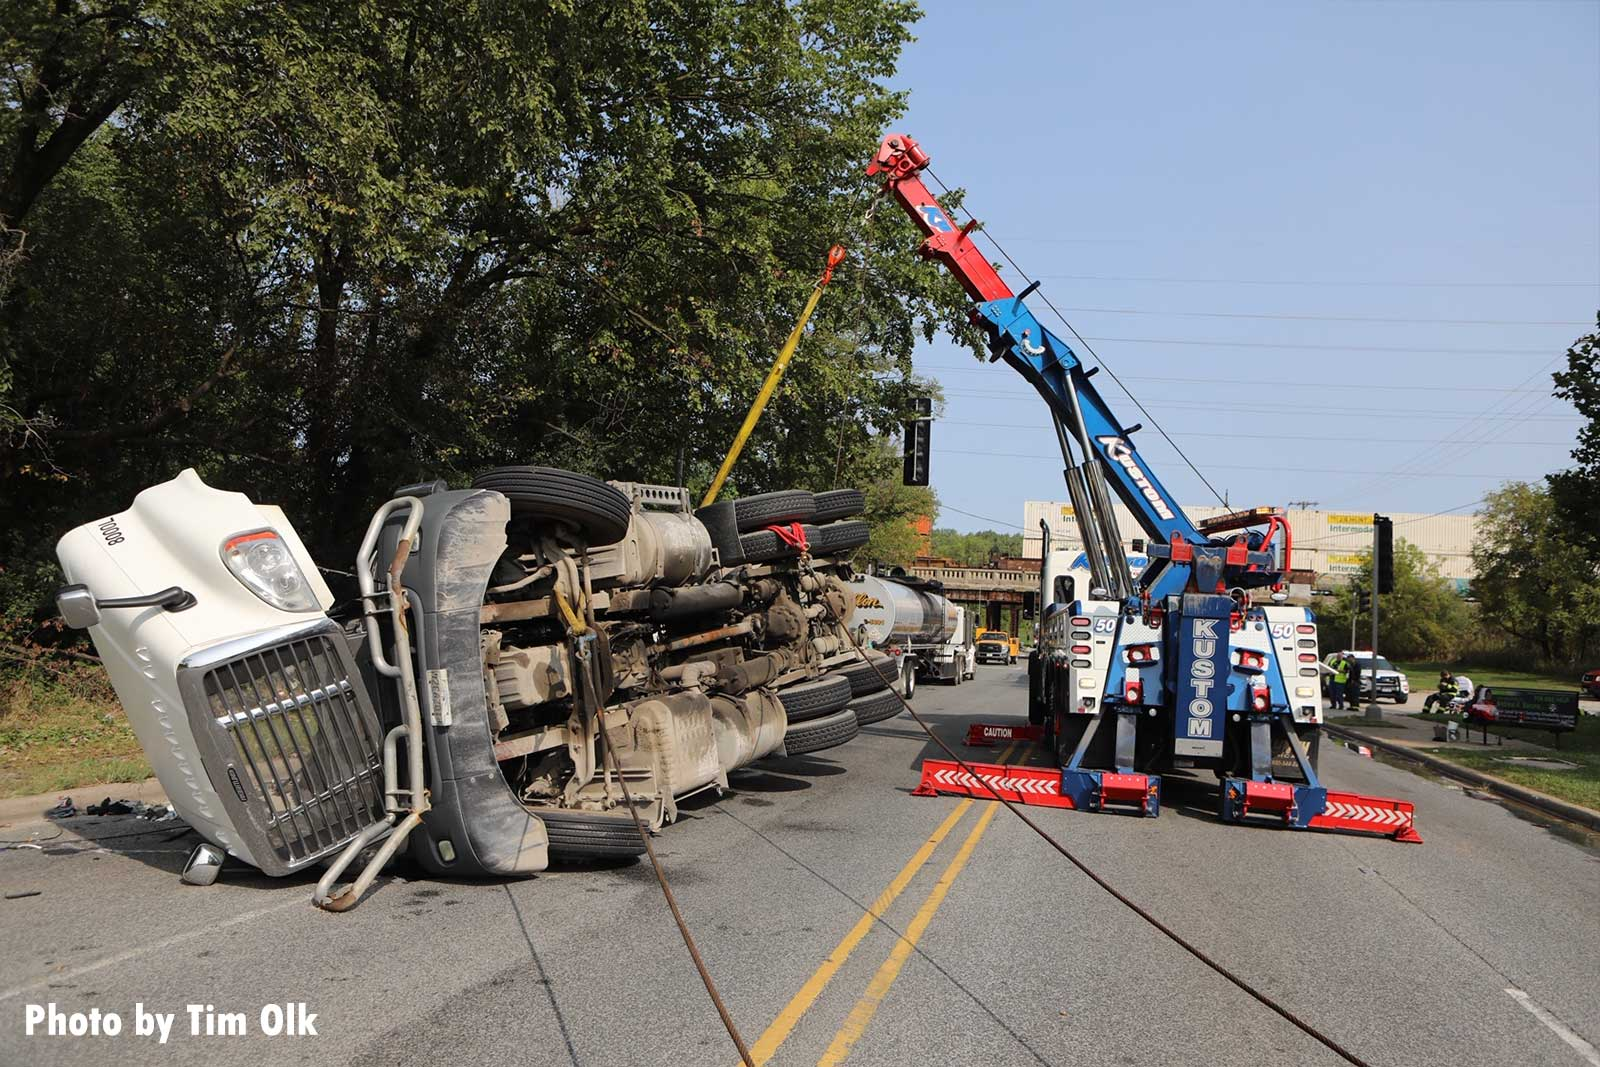 The tanker truck is righted